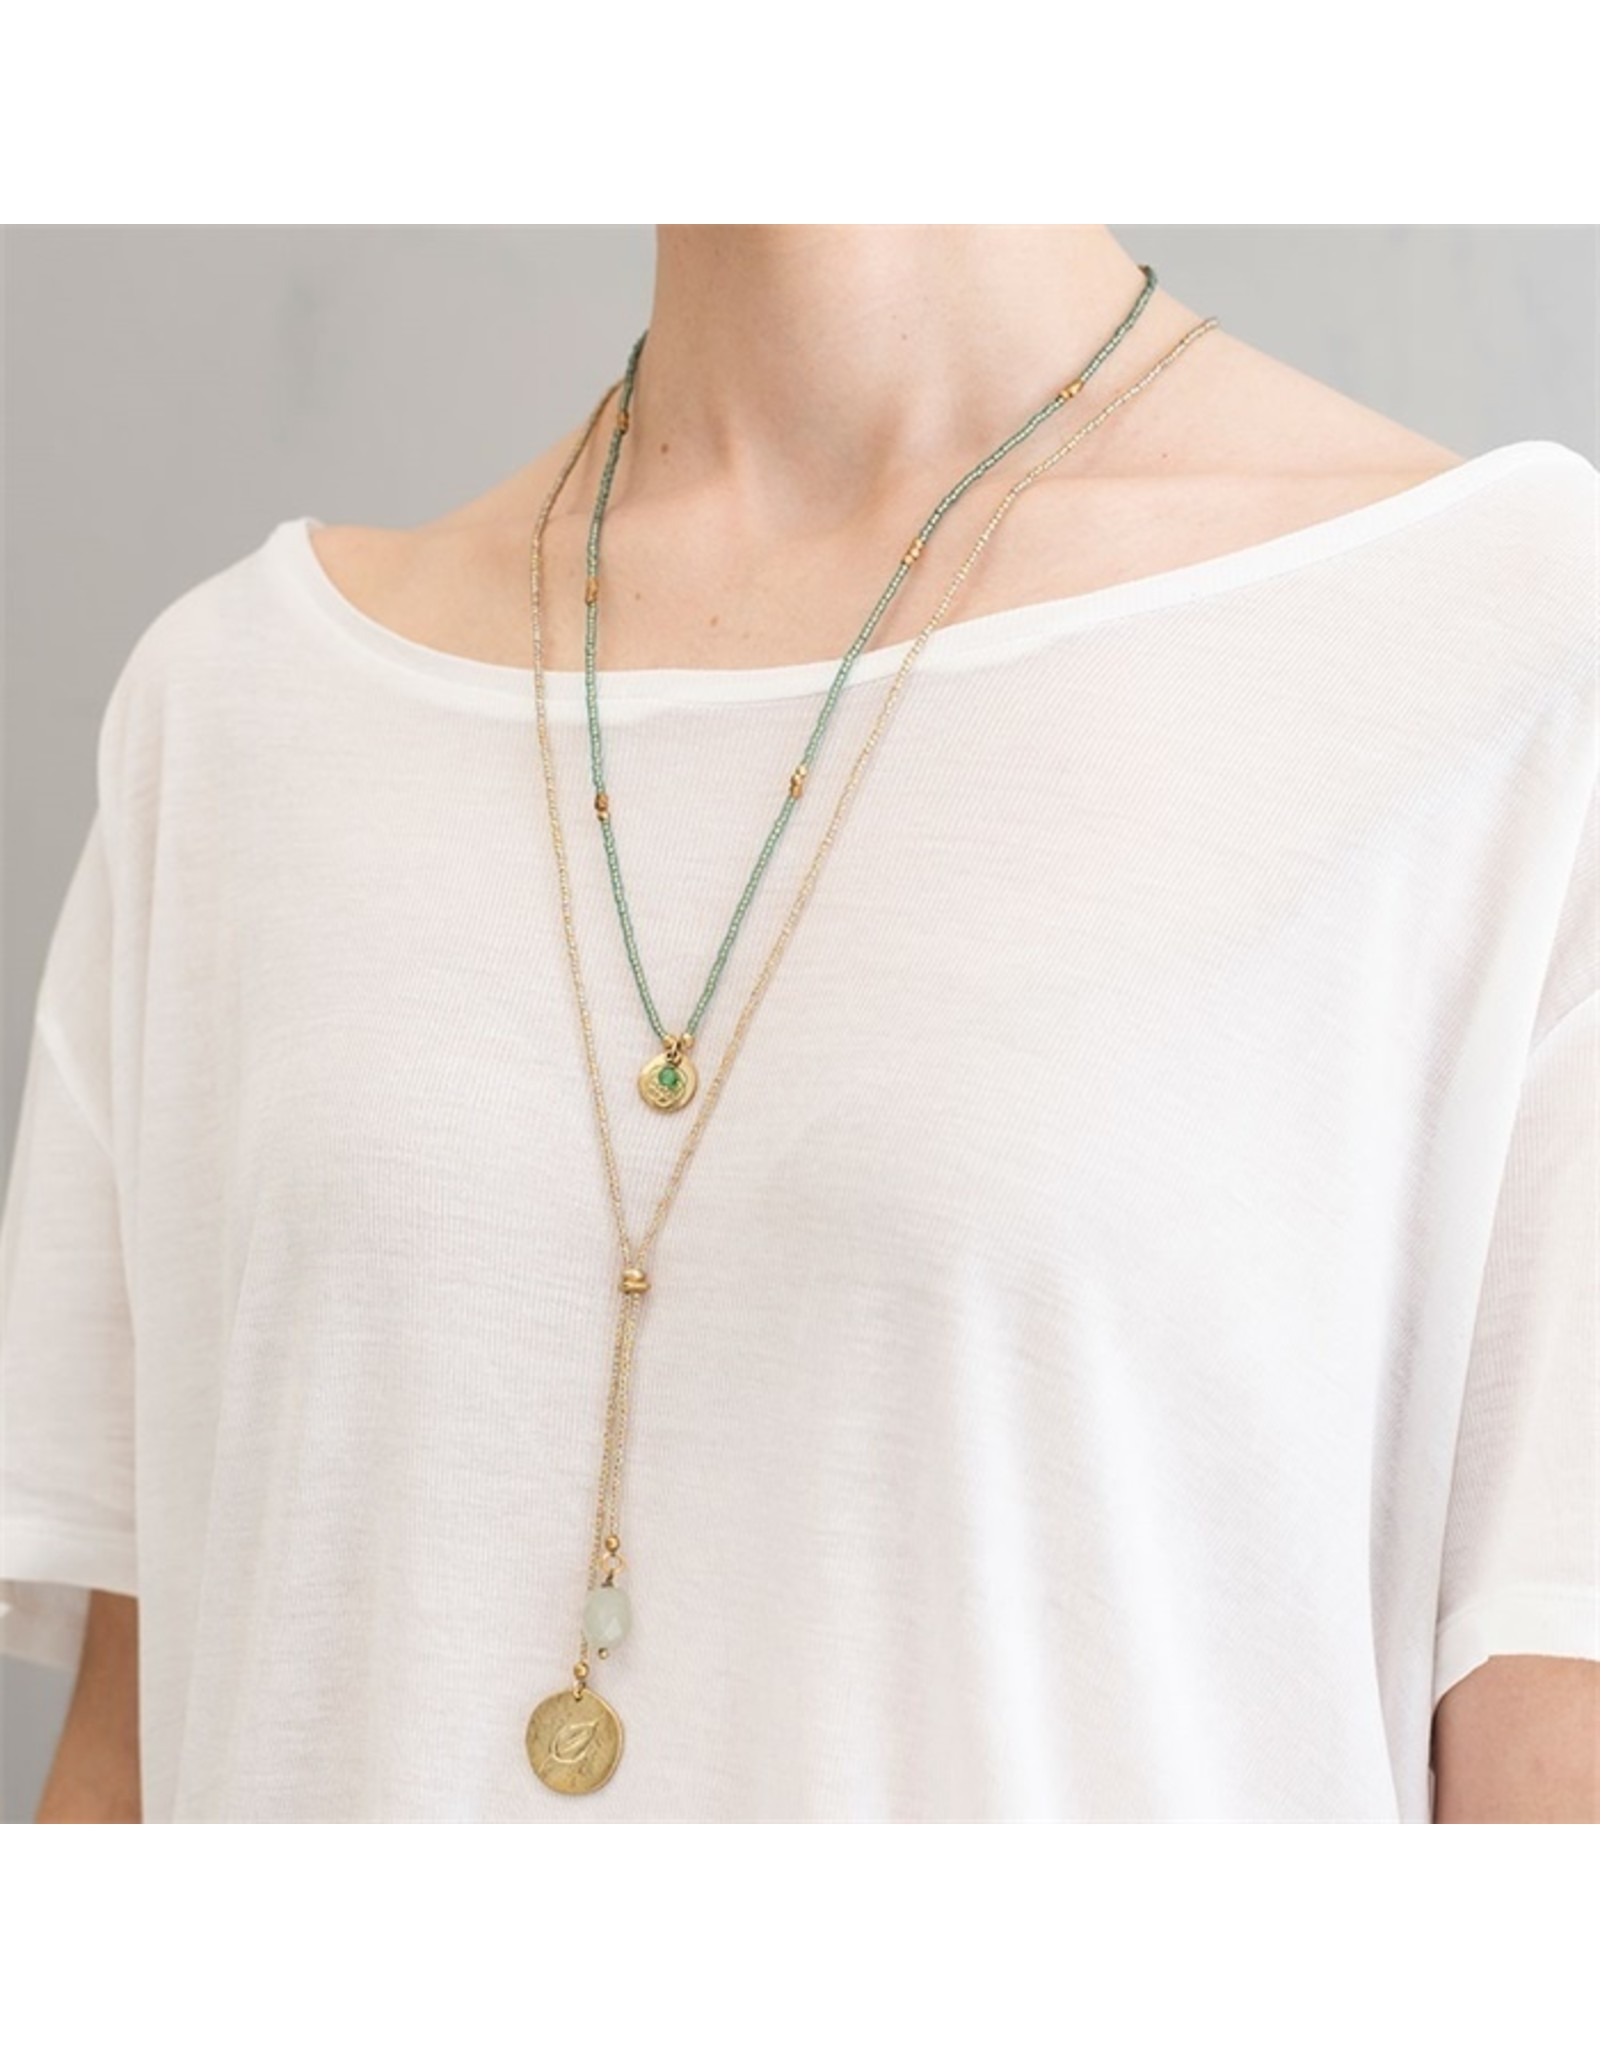 A beautiful Story Truly Gold Necklace